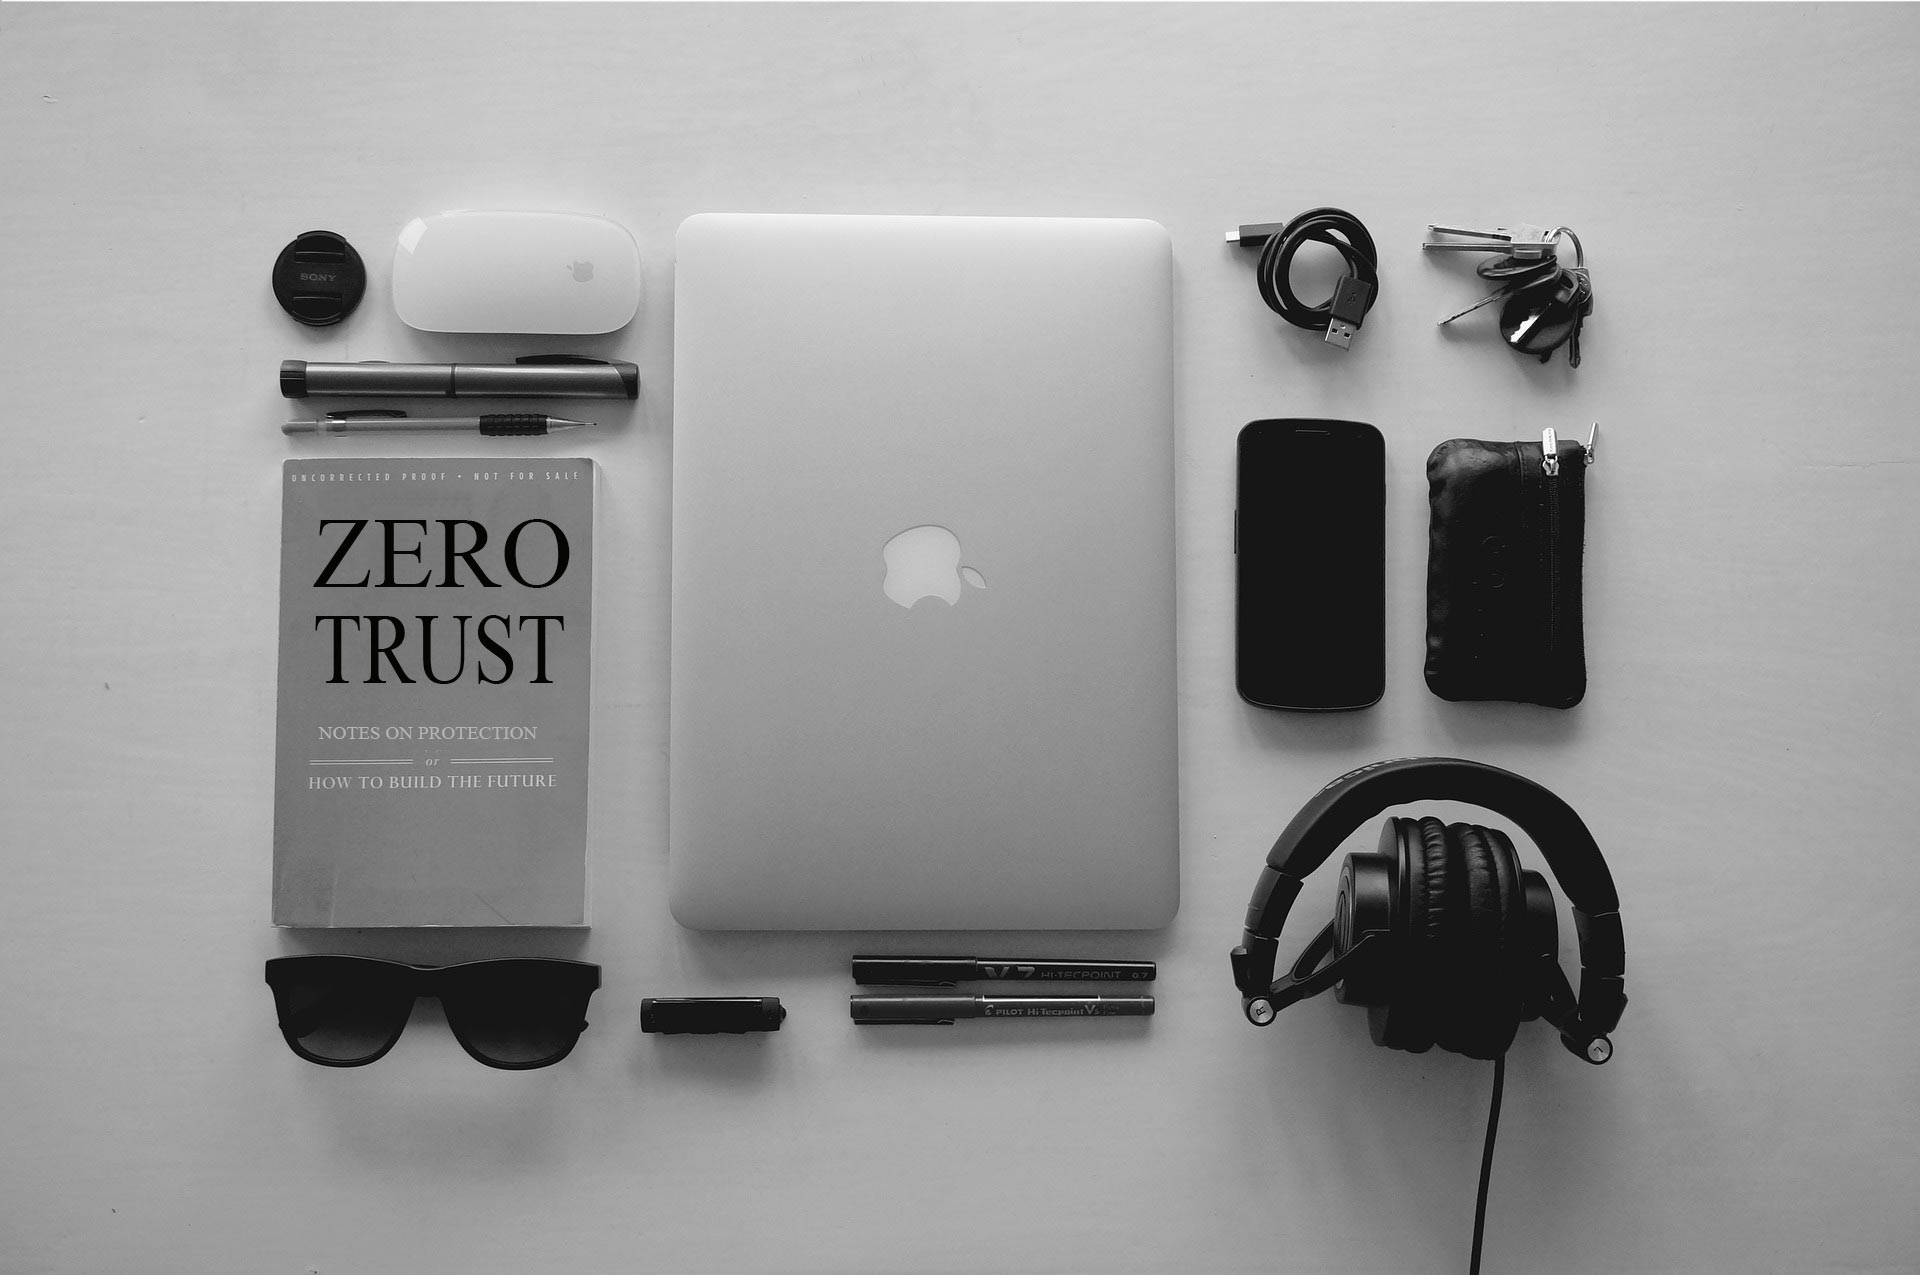 Zero Trust Image with computer book and computer